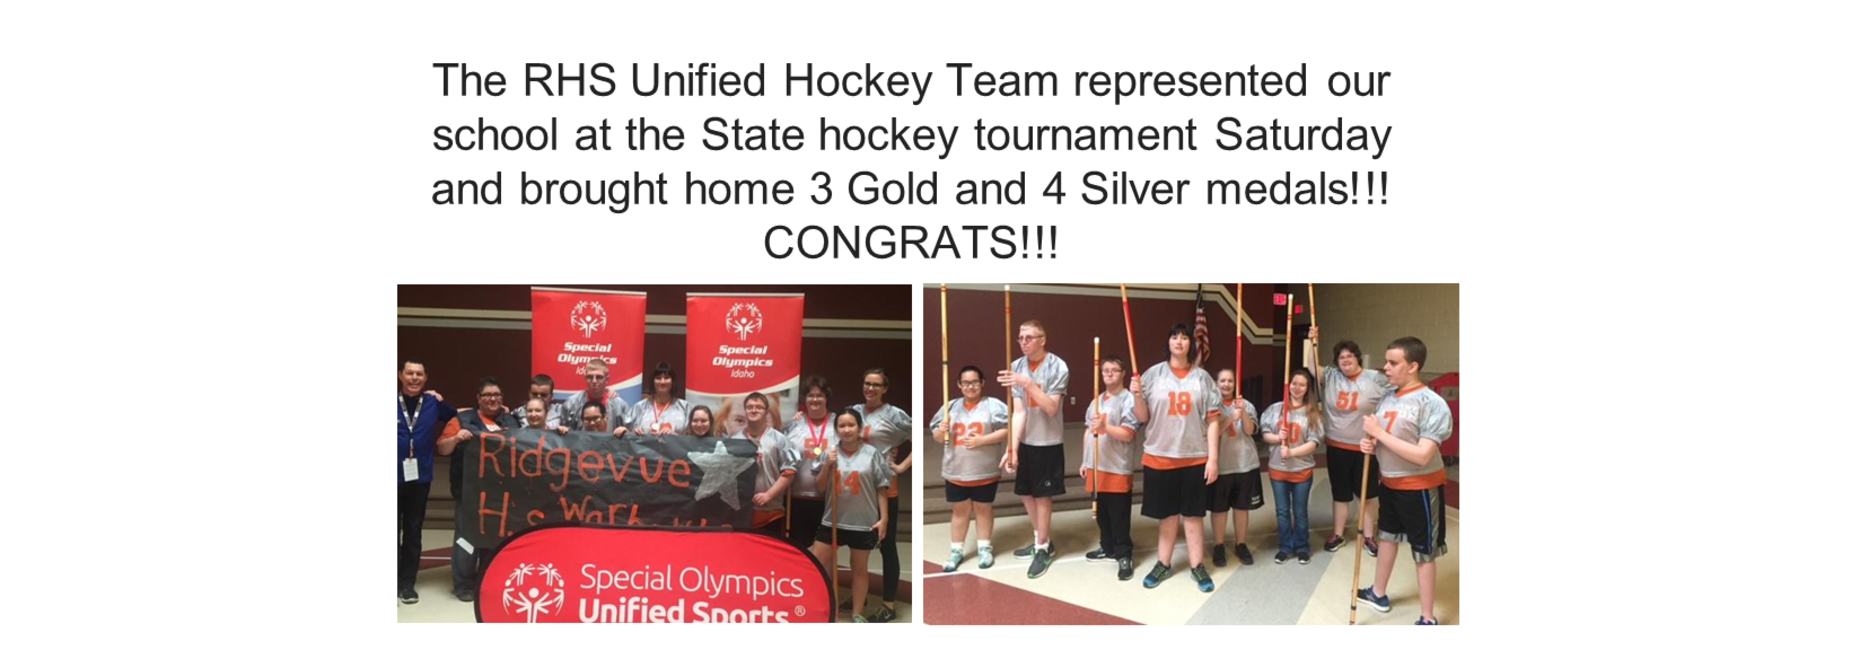 Unified Hockey Team wins medals